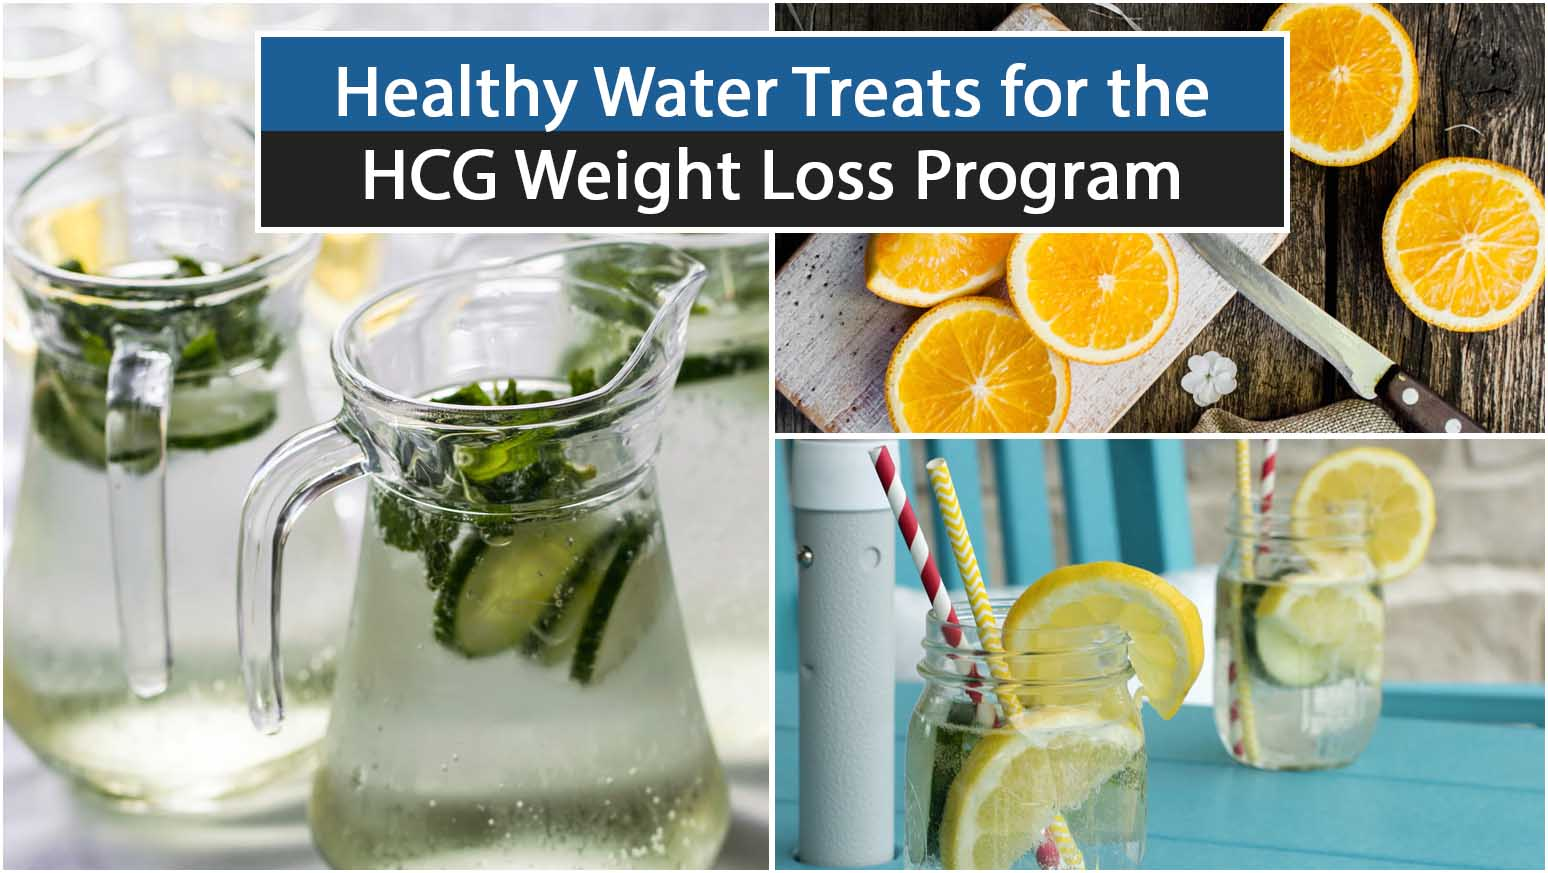 Healthy Water Treats for the HCG Weight Loss Program